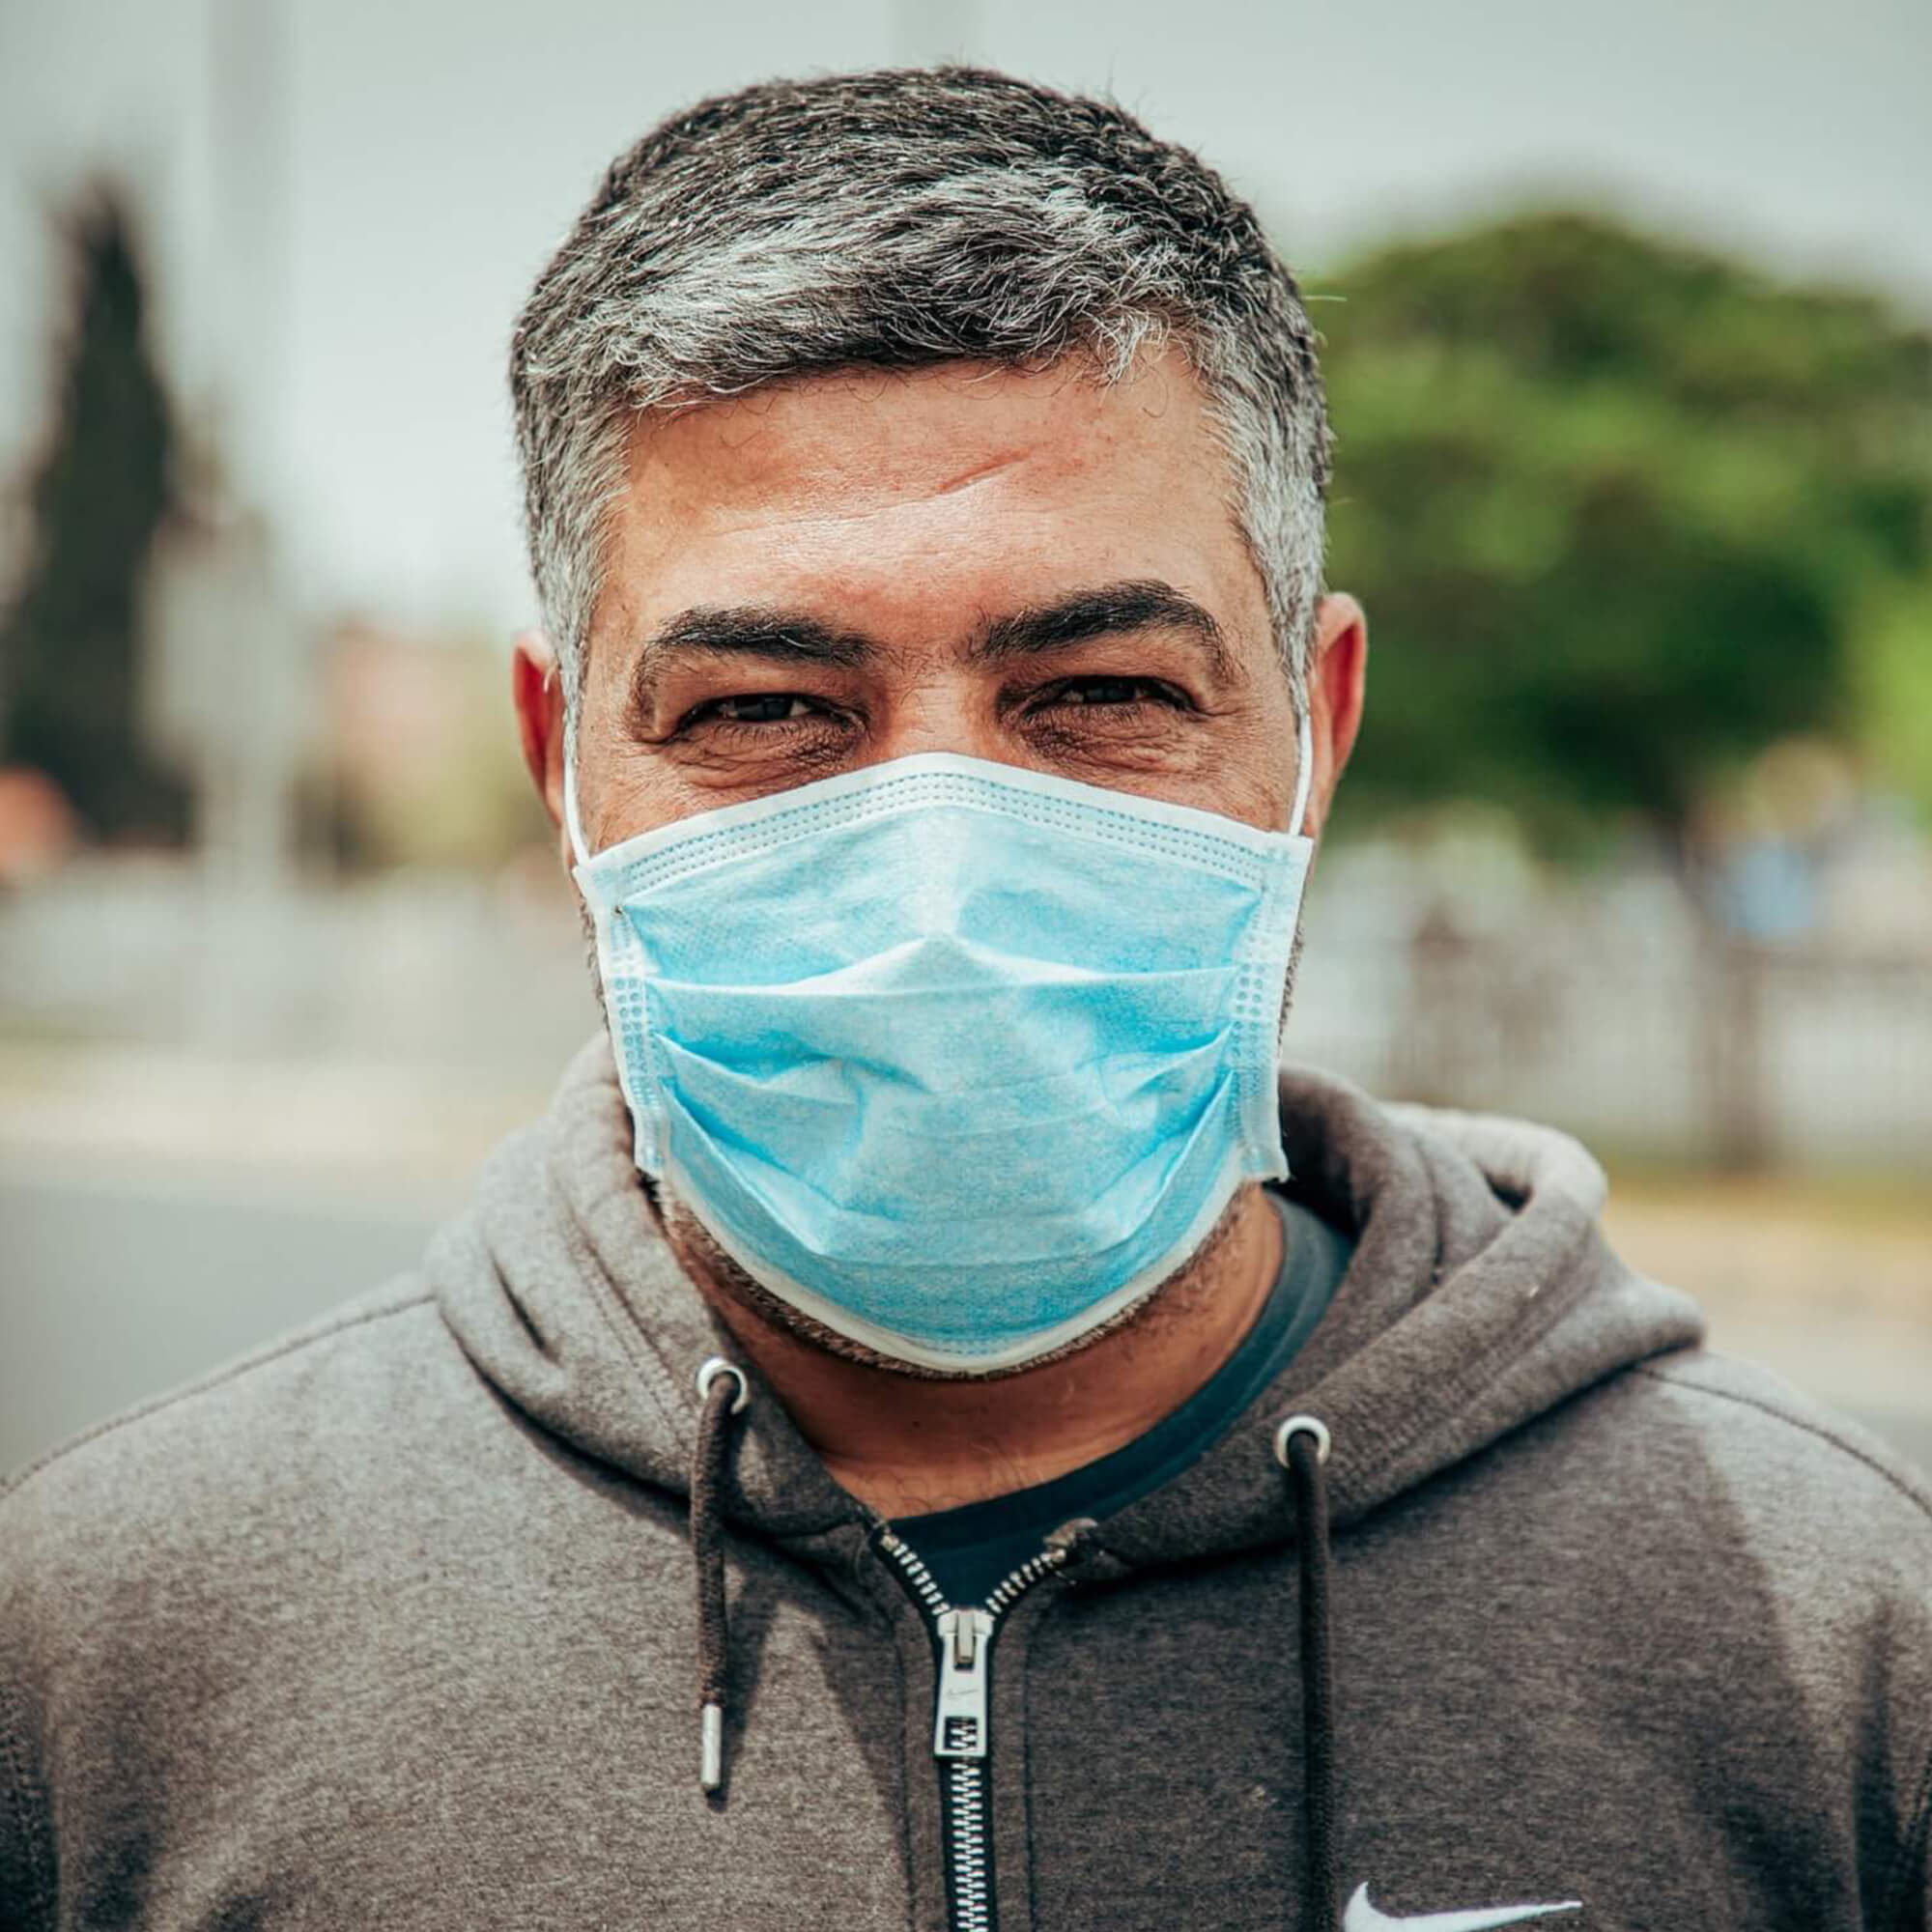 A man wearing a surgical face mask